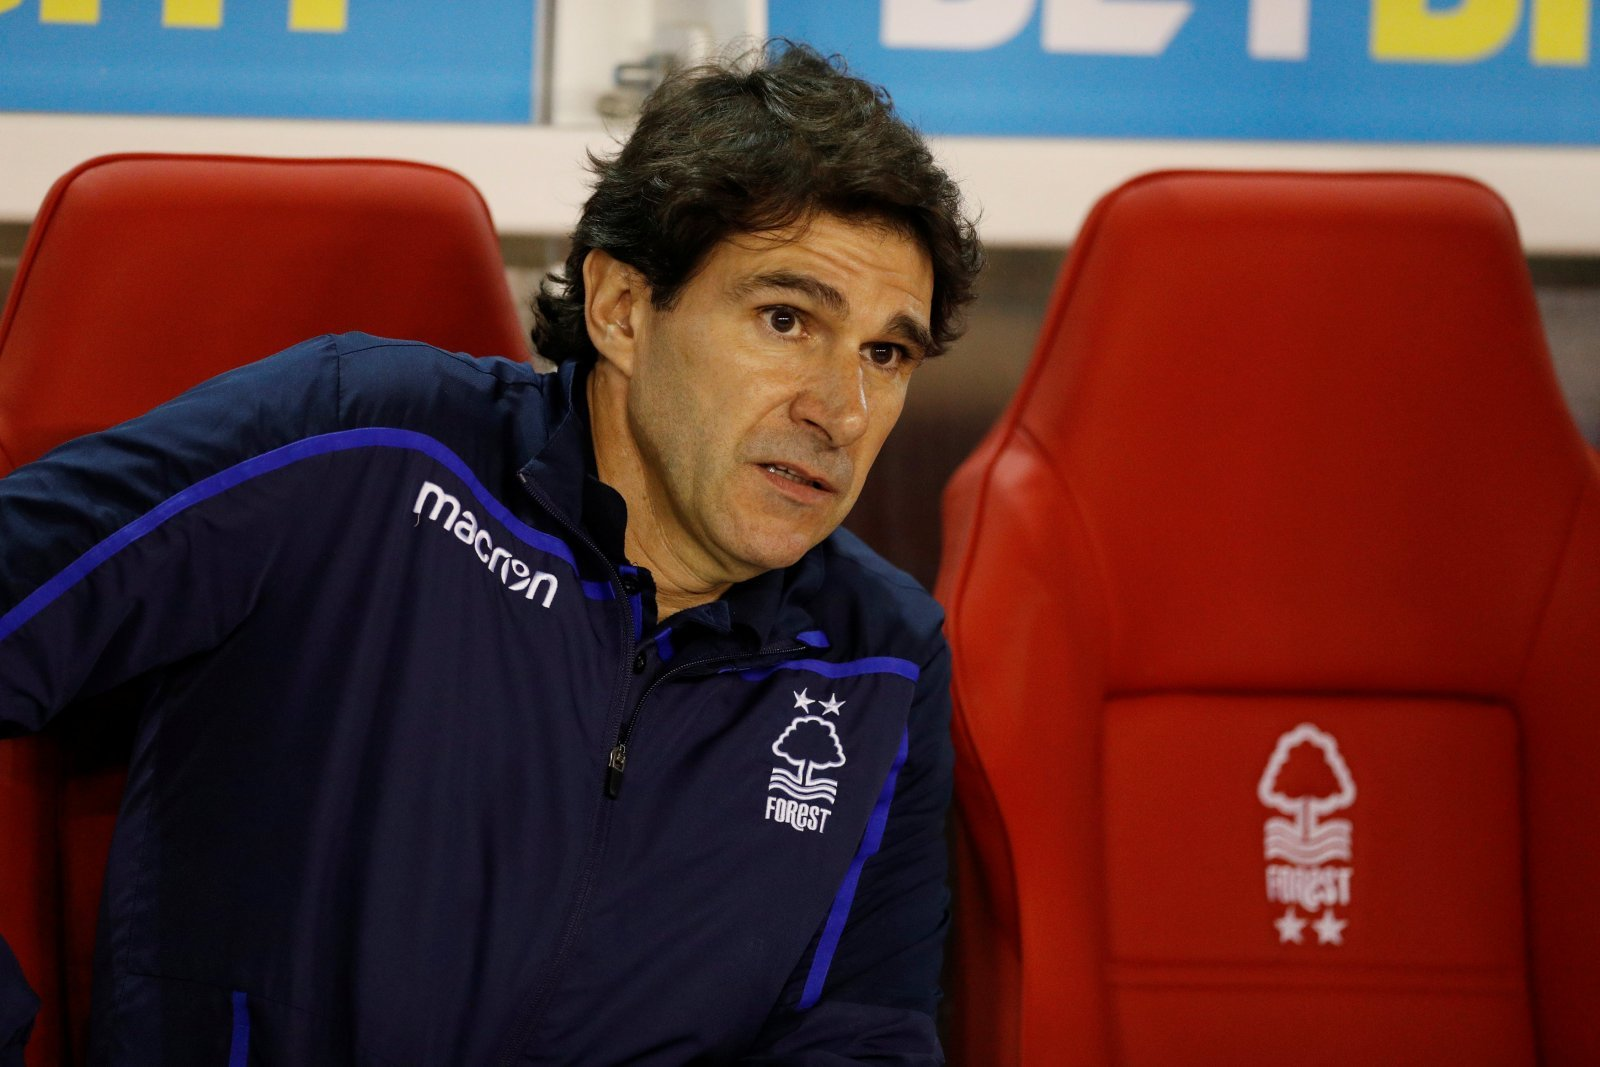 Nottingham Forest fans are furious at Karanka's departure